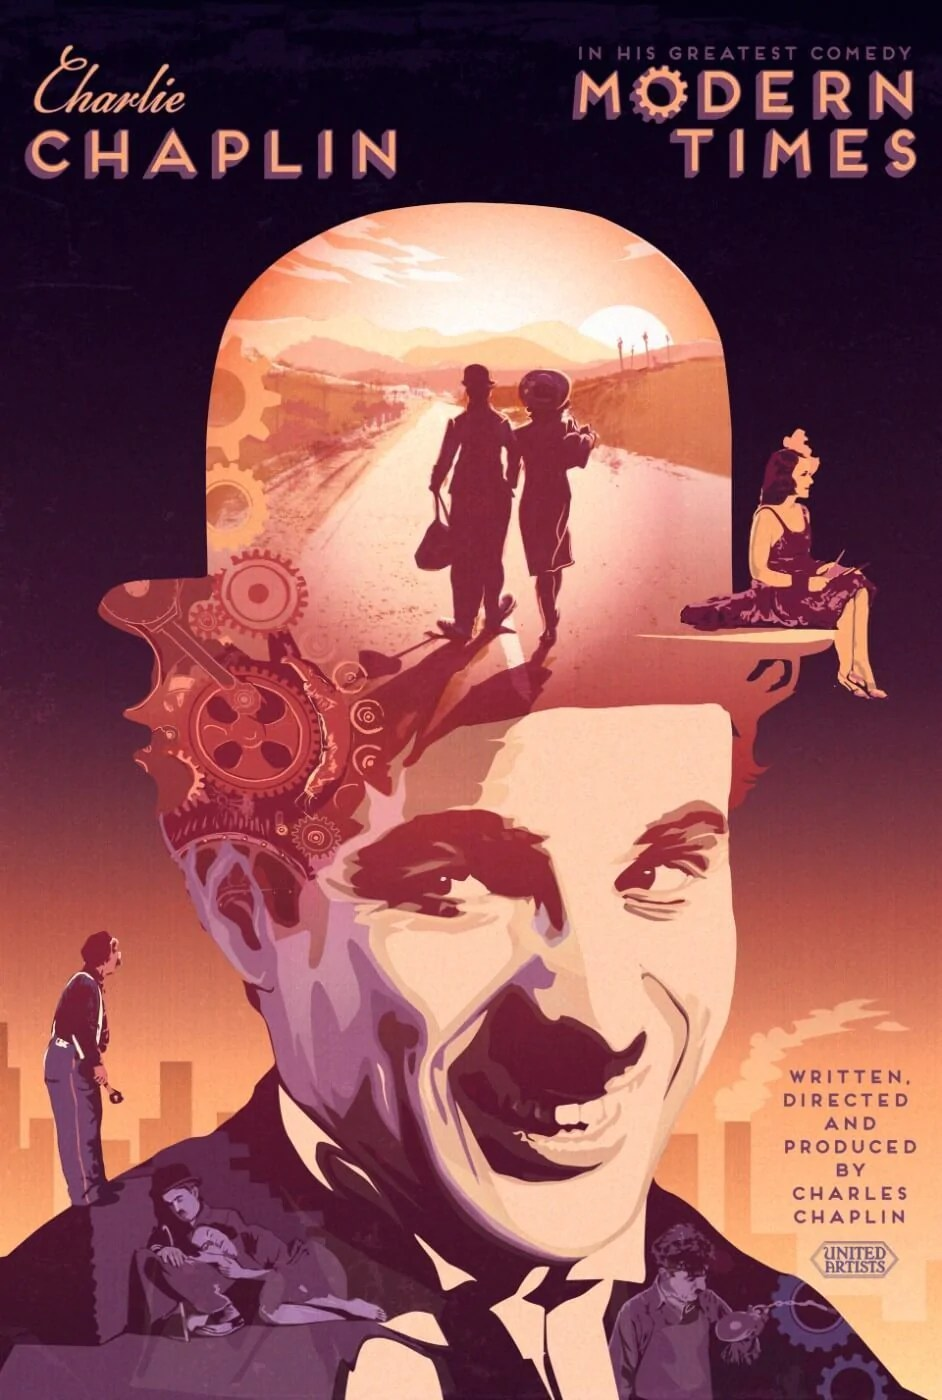 tallenge hollywood collection charlie chaplin modern times vintage movie poster life size posters